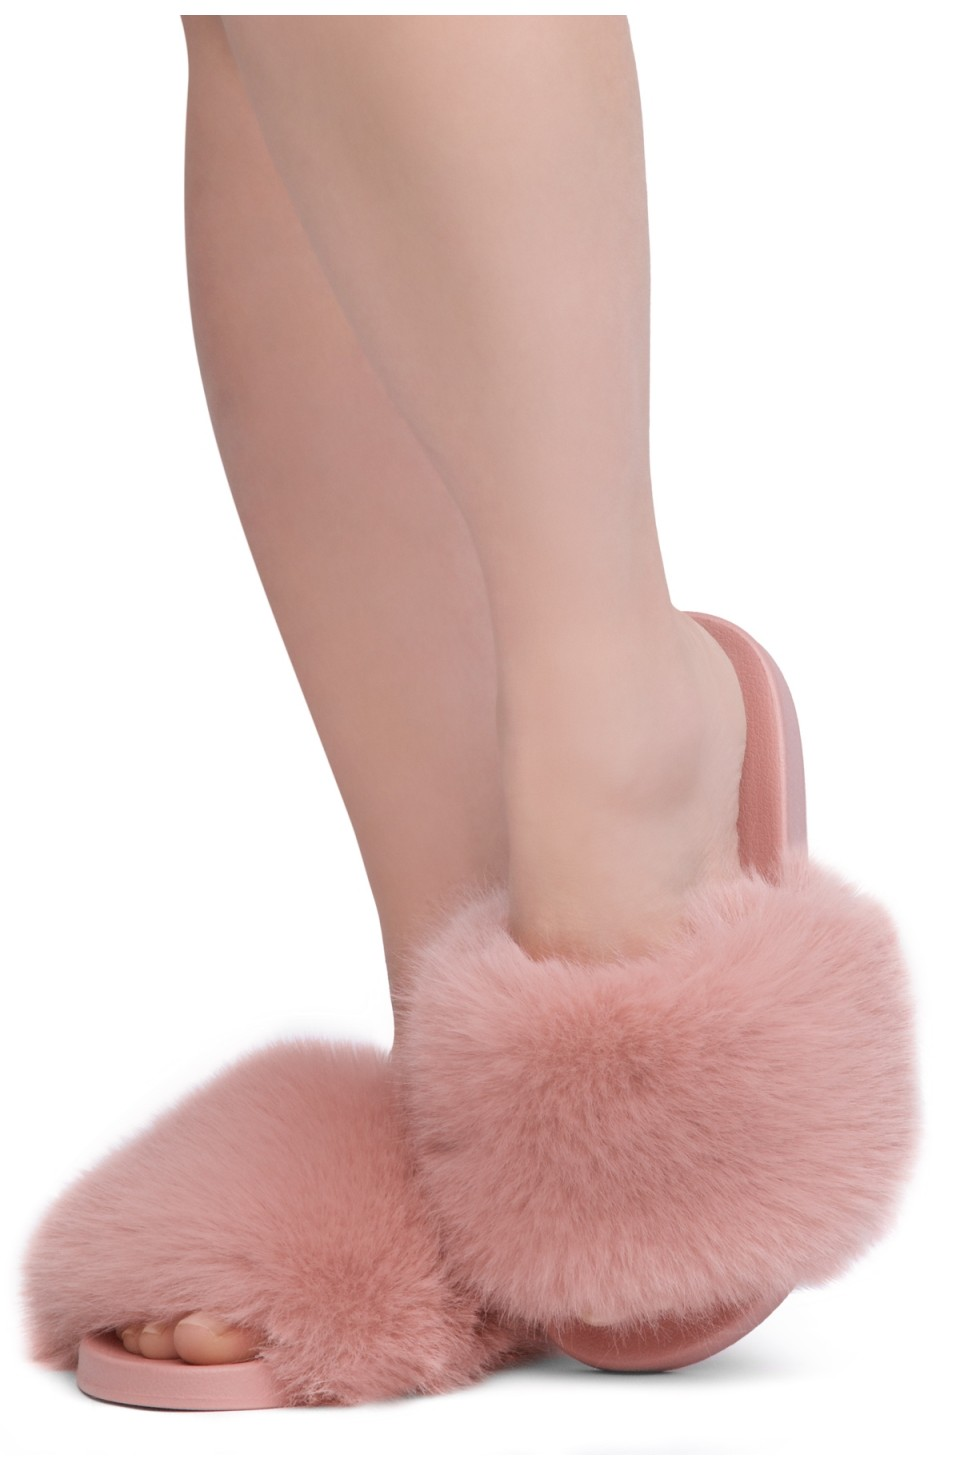 Shoe Land NIKINI Womens Fur Slides Fuzzy Slippers Fashion Fluffy Comfort Flat Sandals(2020 Mauve/Mauve)